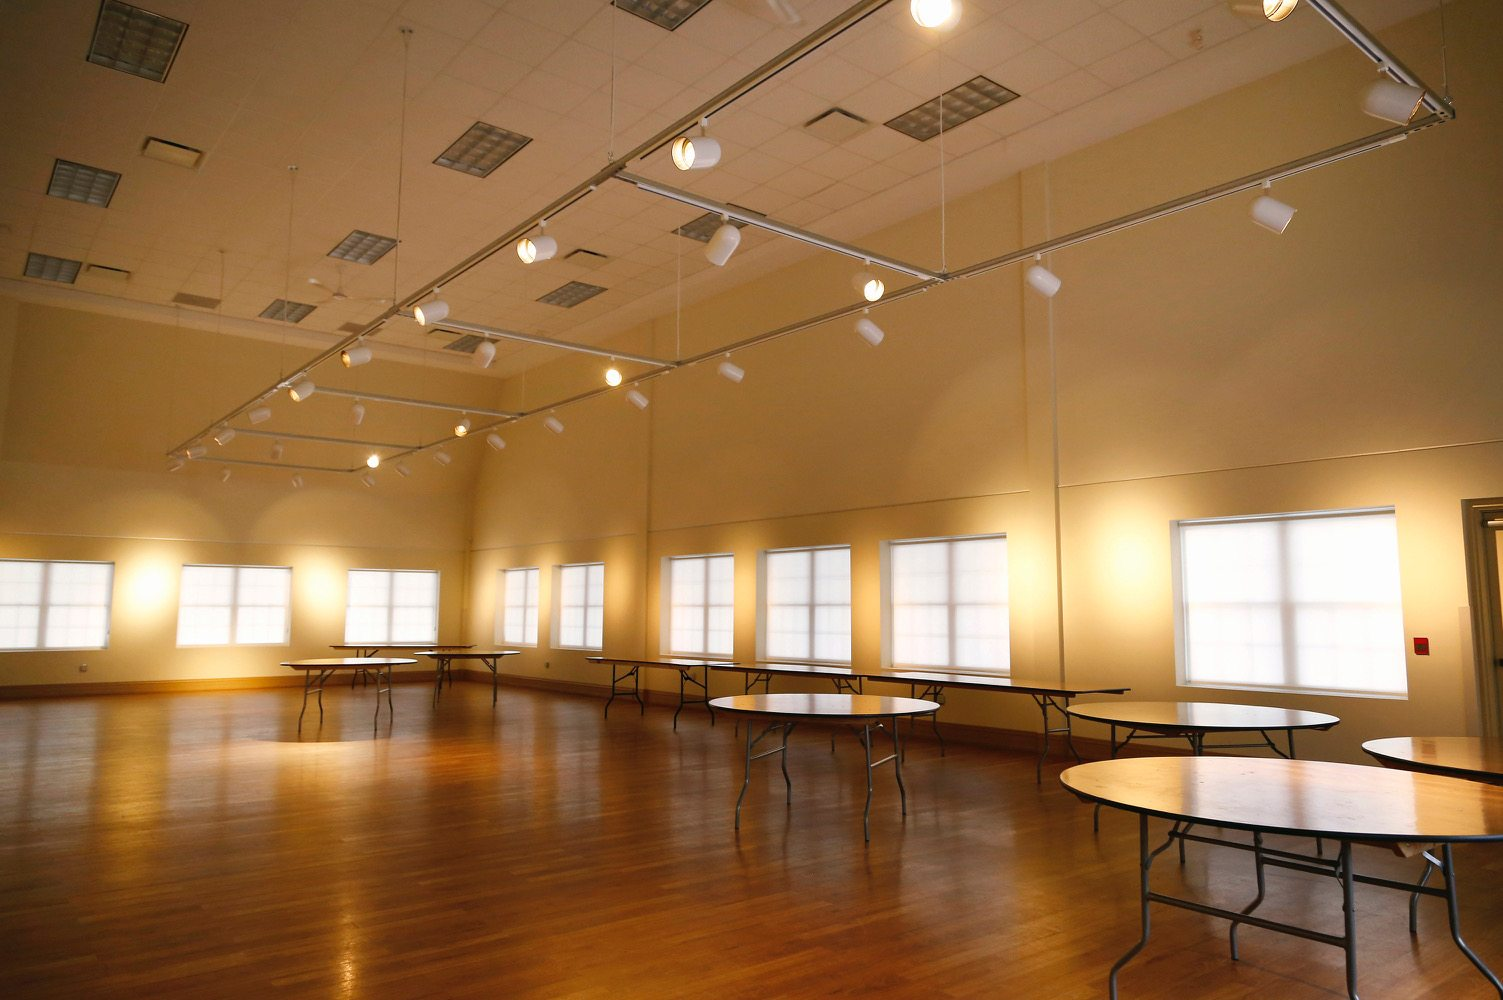 BEFORE: Fanshawe's Trillium Gallery - A Blank Canvas